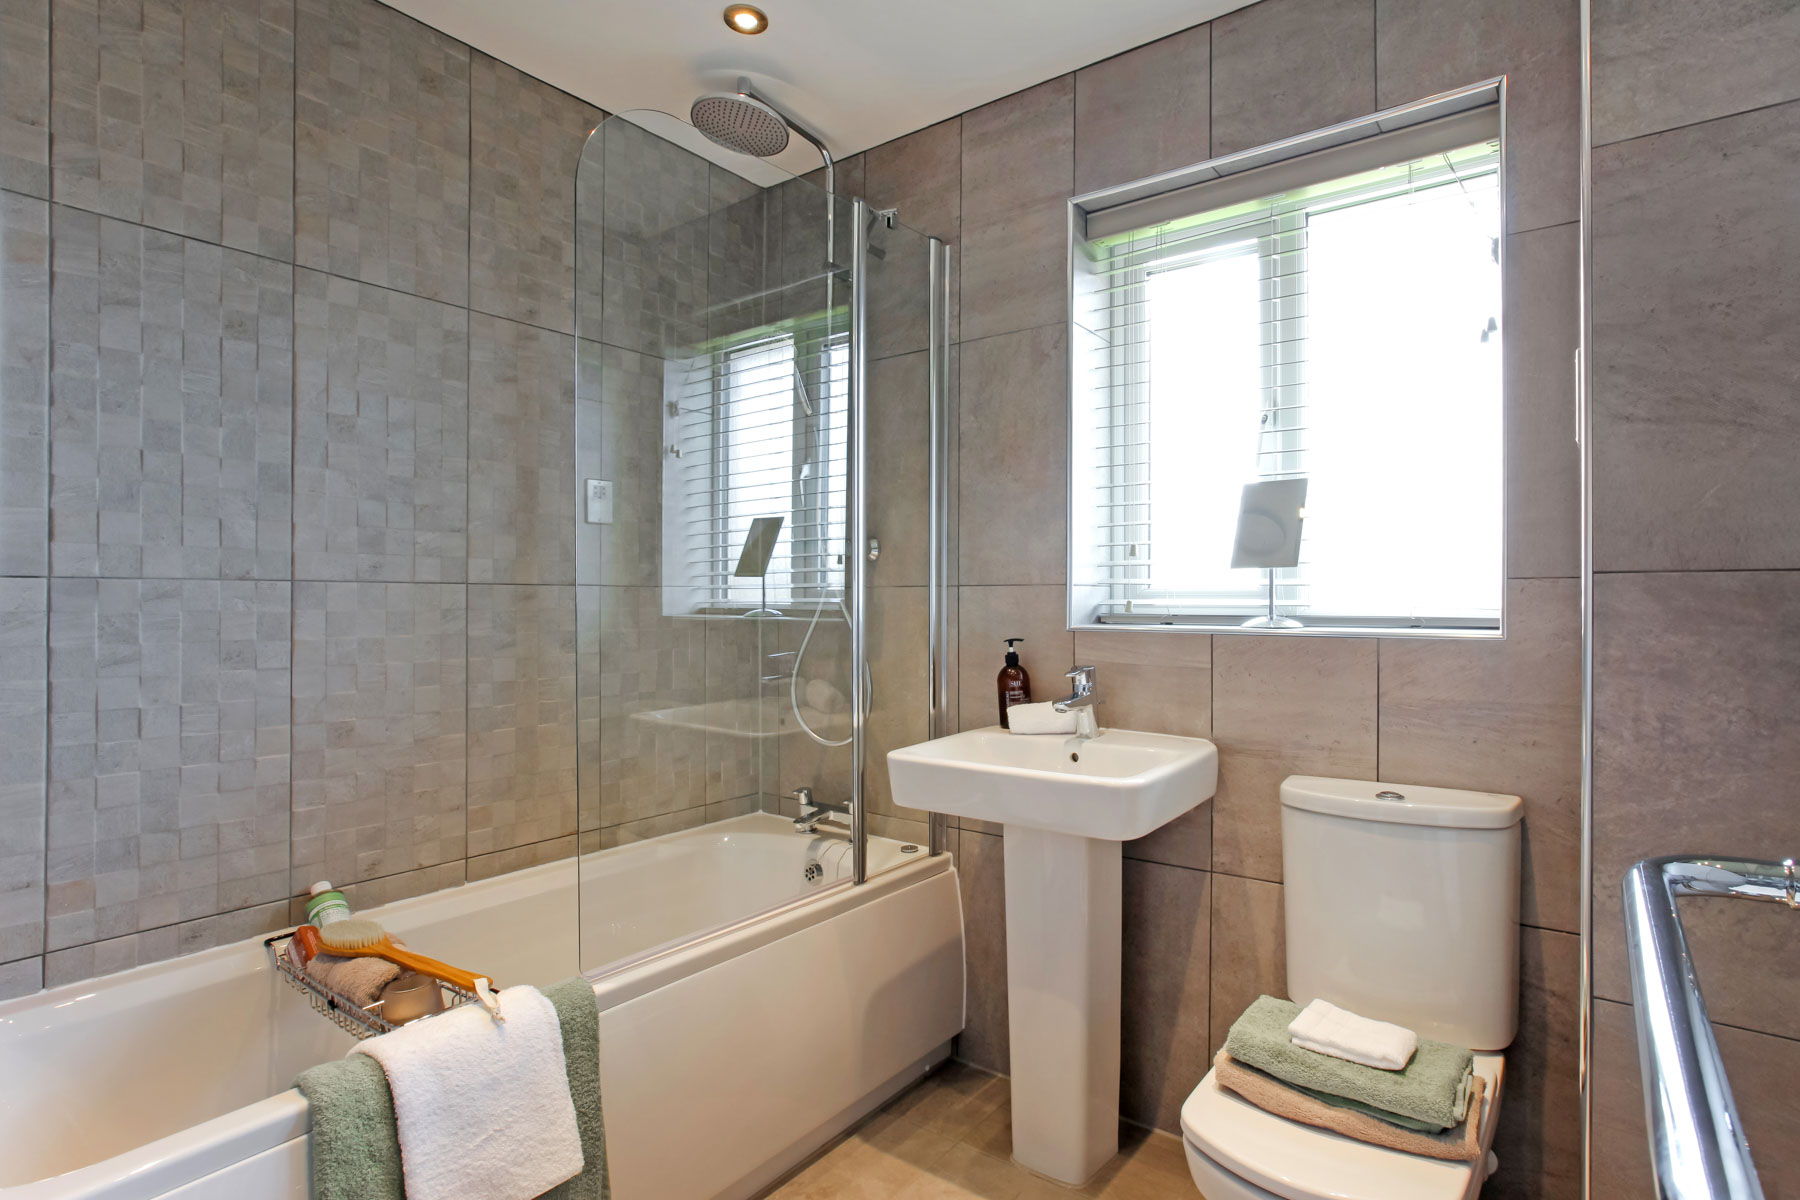 Eynsham_Bathroom